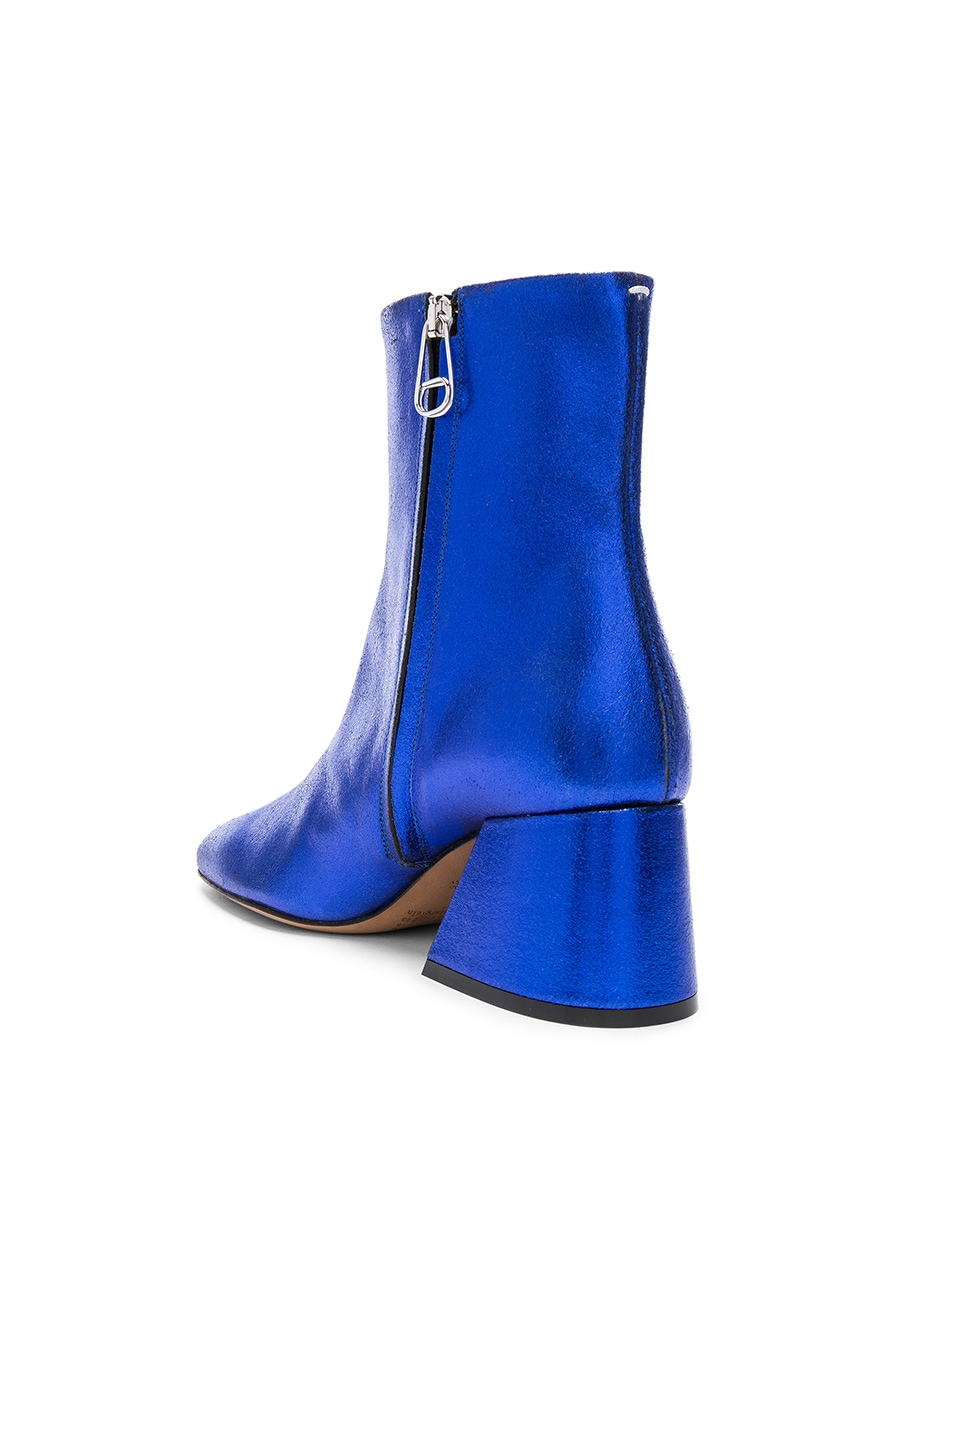 Image 3 of Maison Margiela Laminated Leather Chunky Heel Boots in Cobalt